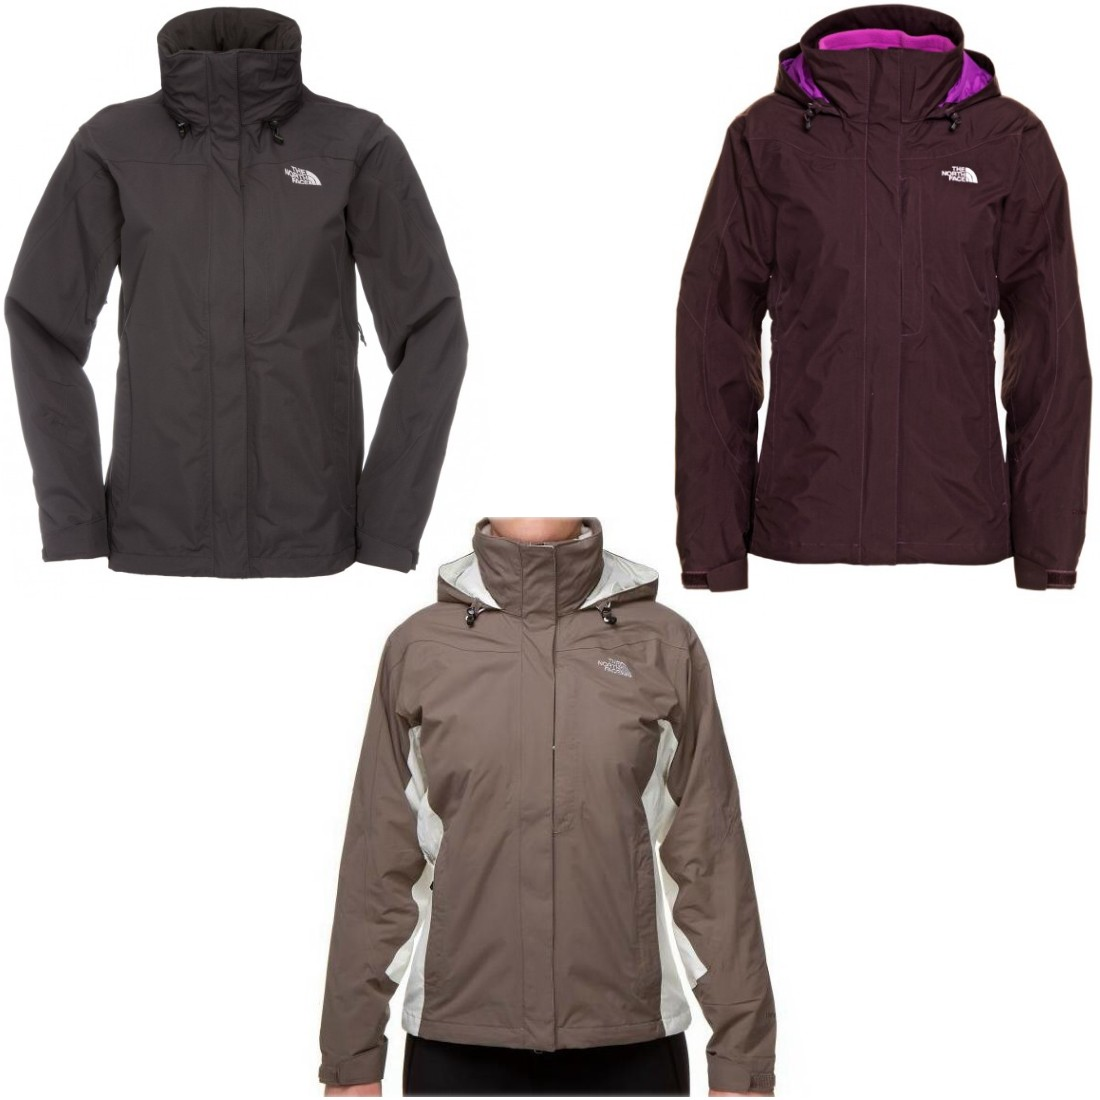 Outdoor jacken damen ebay